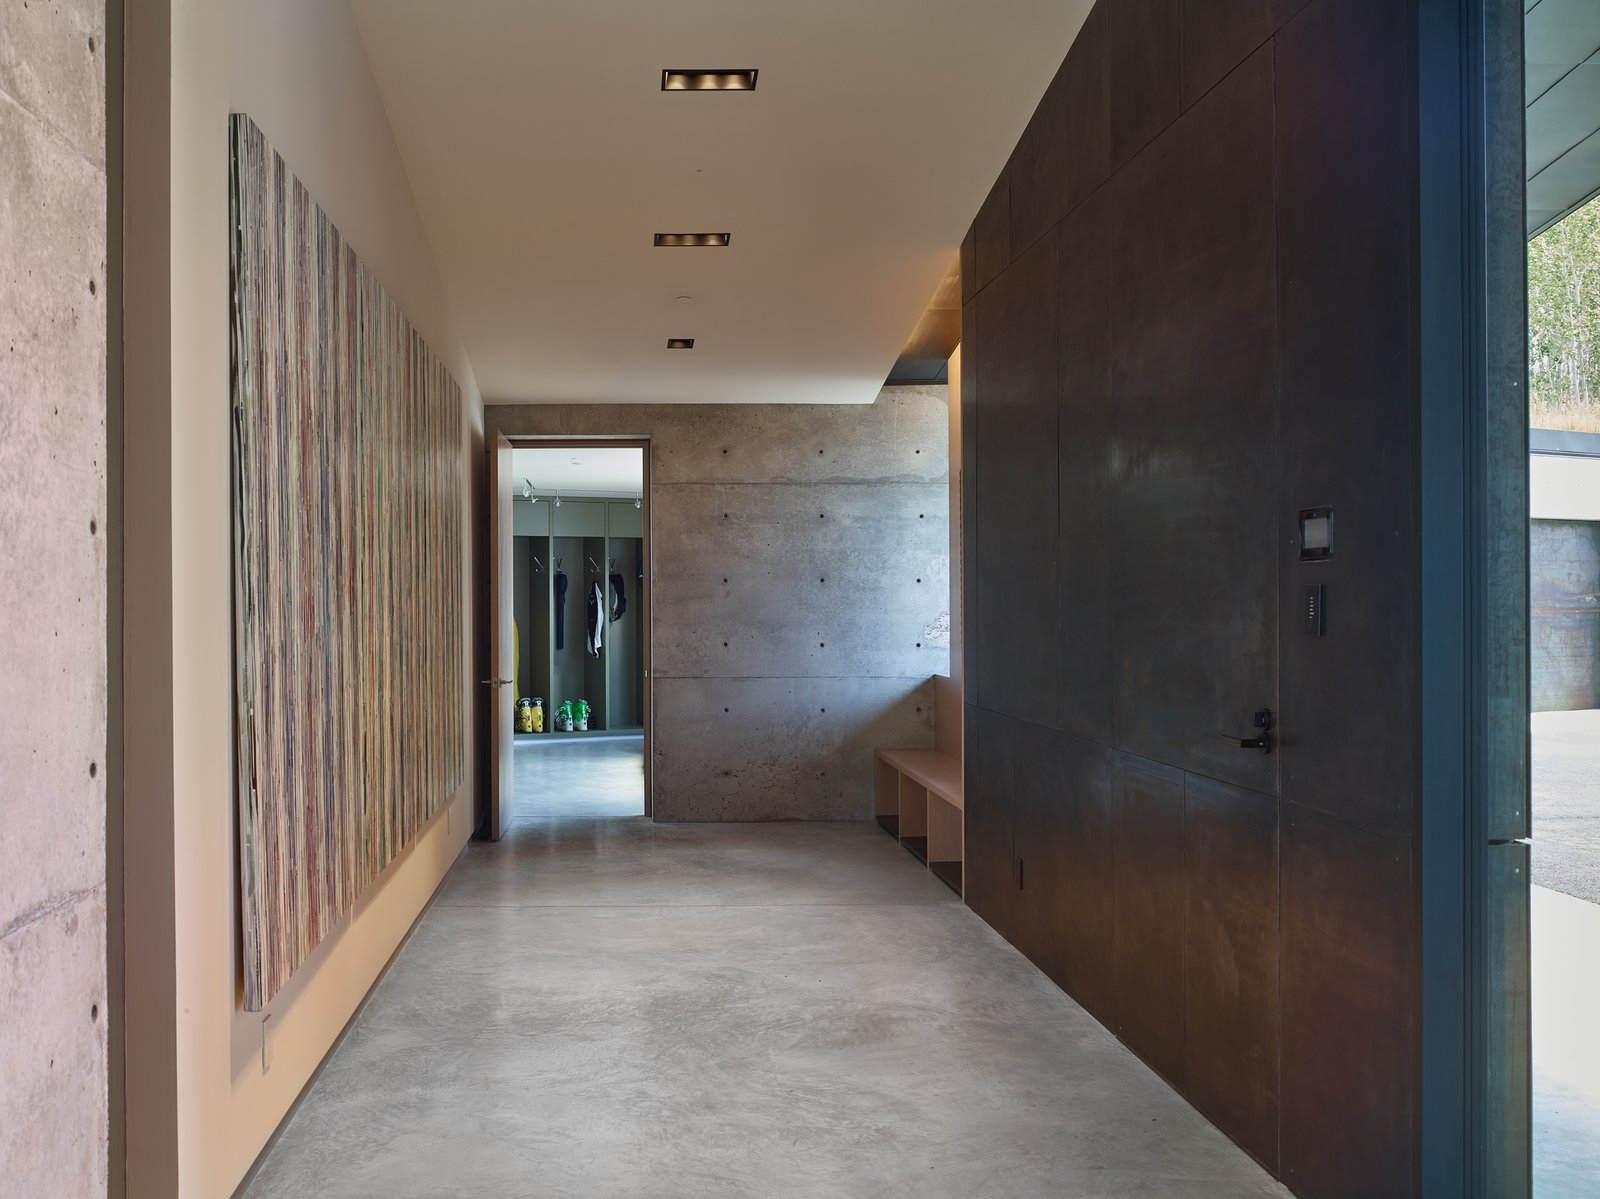 Hallway and Concrete Floor The client possessed a collection of art to be placed in the home, which was meticulously considered in the design process. Drywall was used exclusively and deliberately to hang the artwork to each piece's necessary measurement.   Wyoming Residence by Abramson Teiger Architects